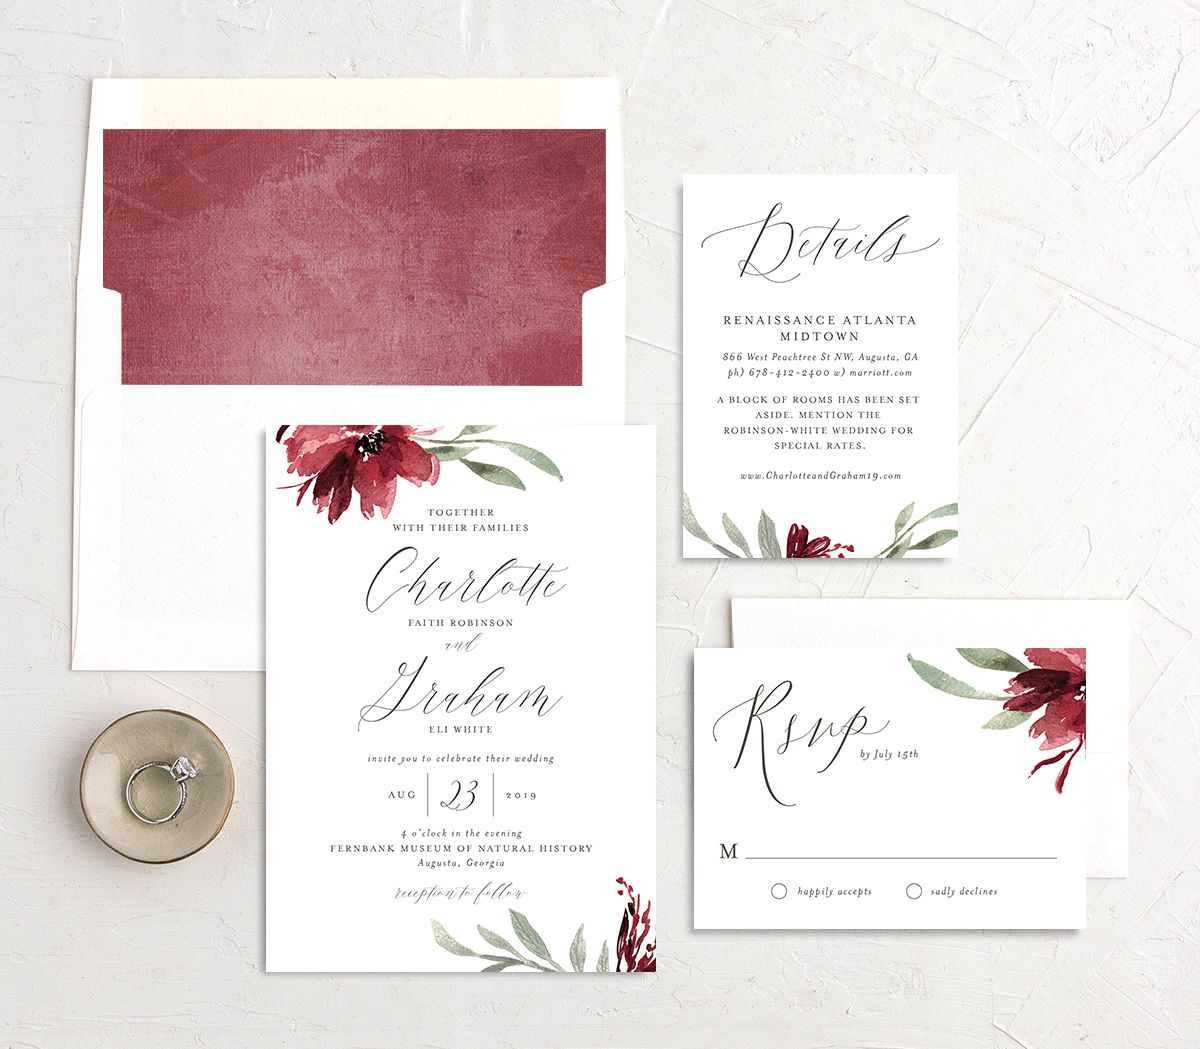 muted floral wedding invitation stationery suite in burgundy